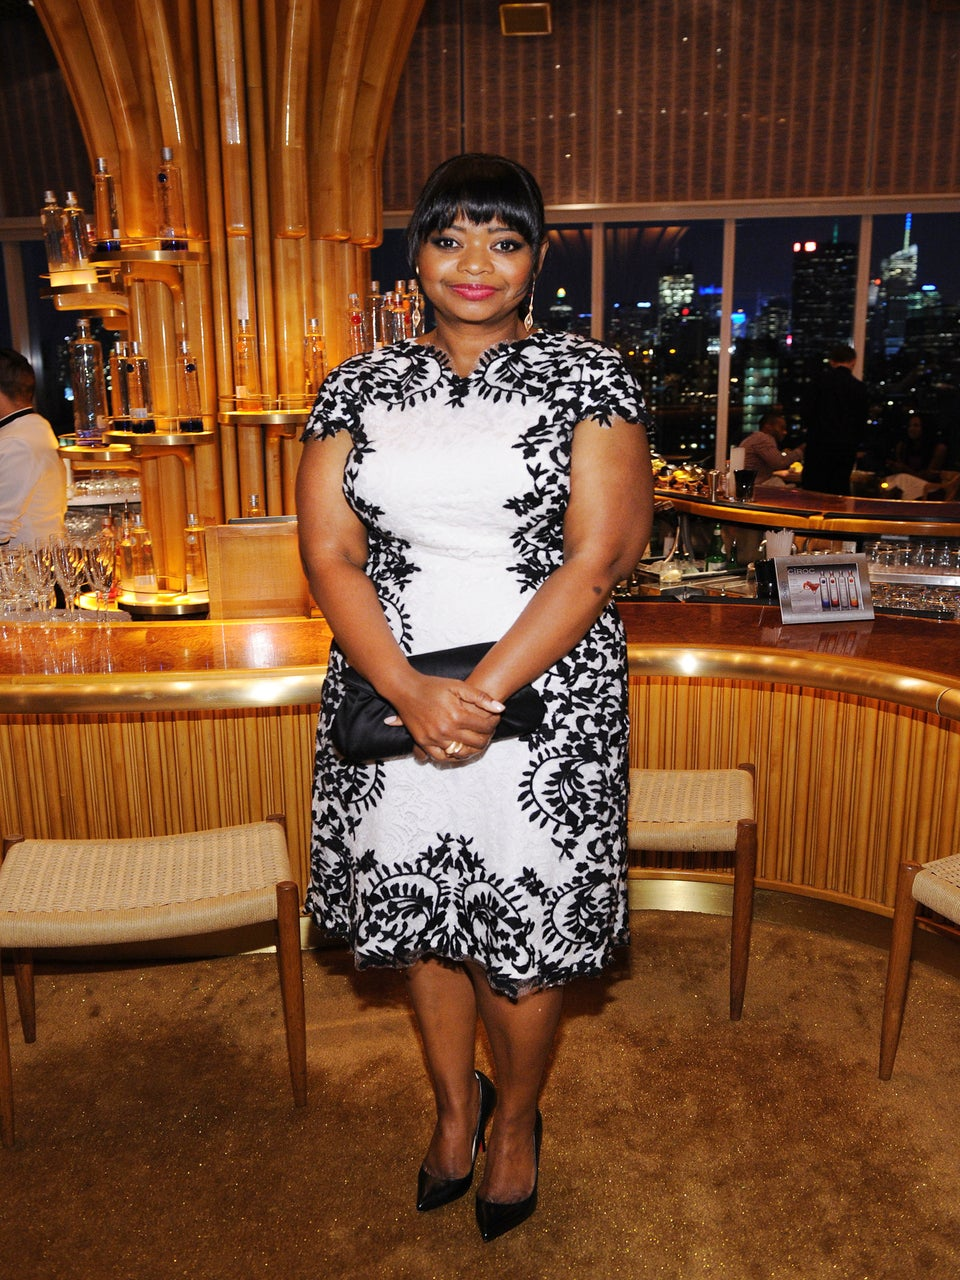 Octavia Spencer Sues Weight Loss Company Over Endorsement Deal